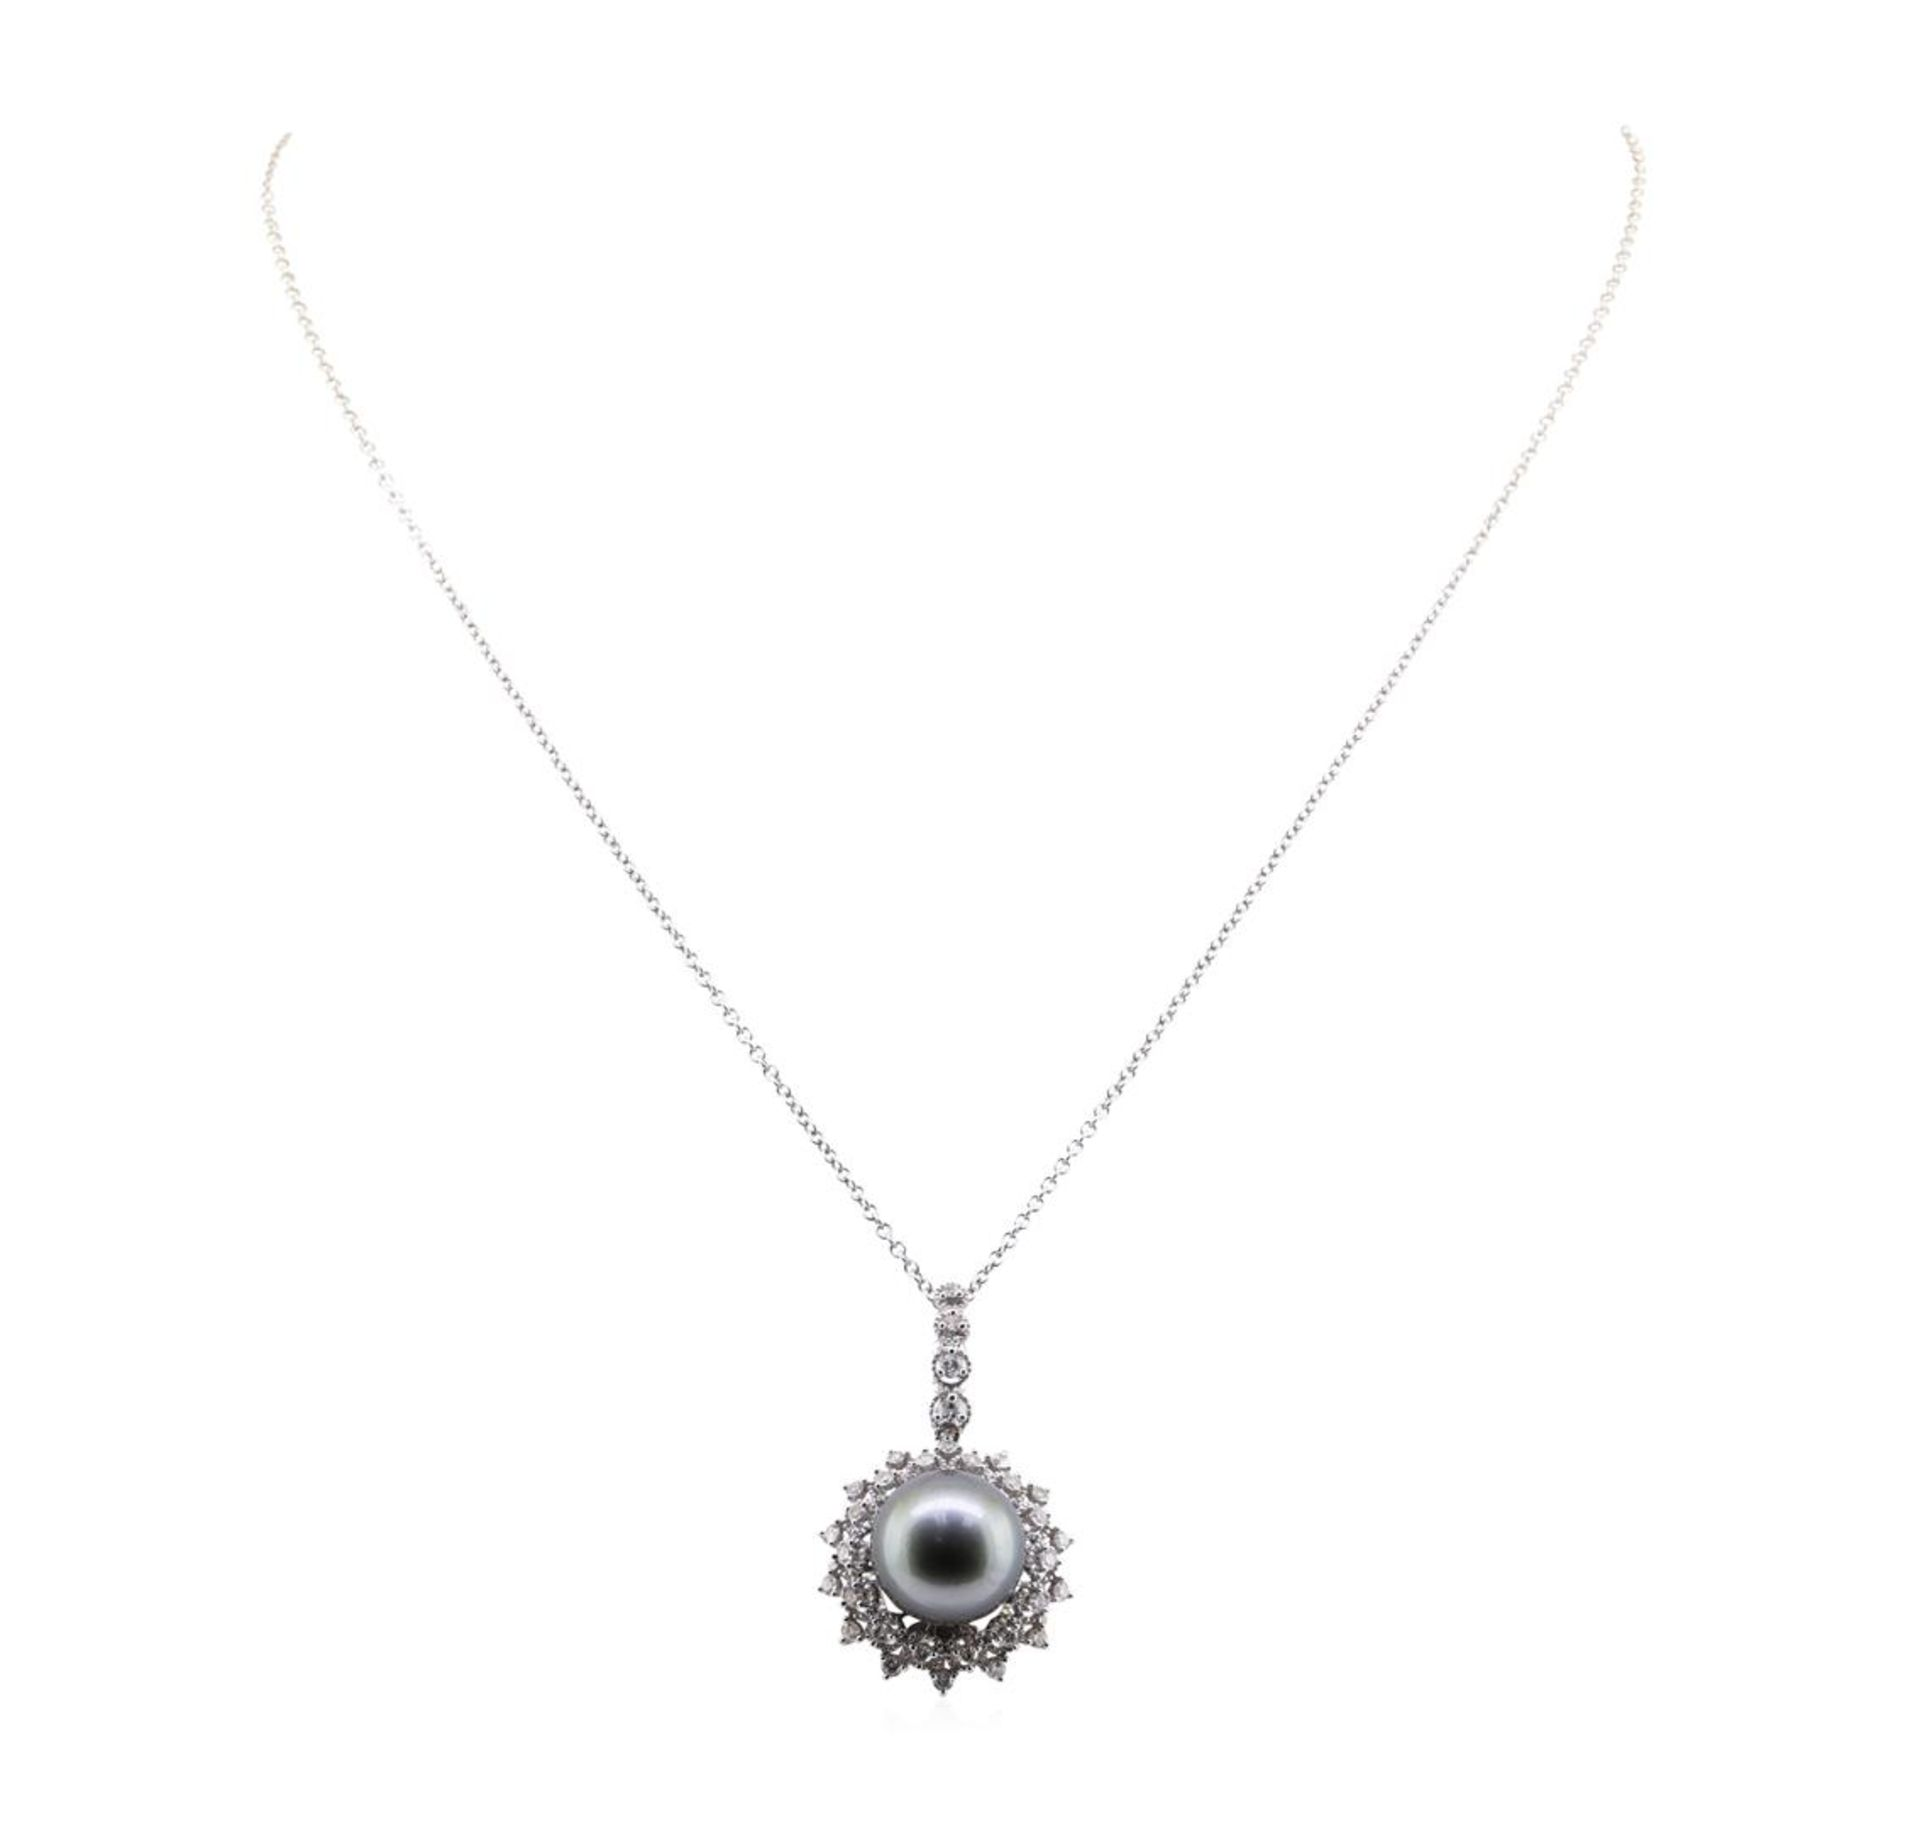 Pearl and Diamond Pendant With Chain - 18KT White Gold - Image 2 of 3